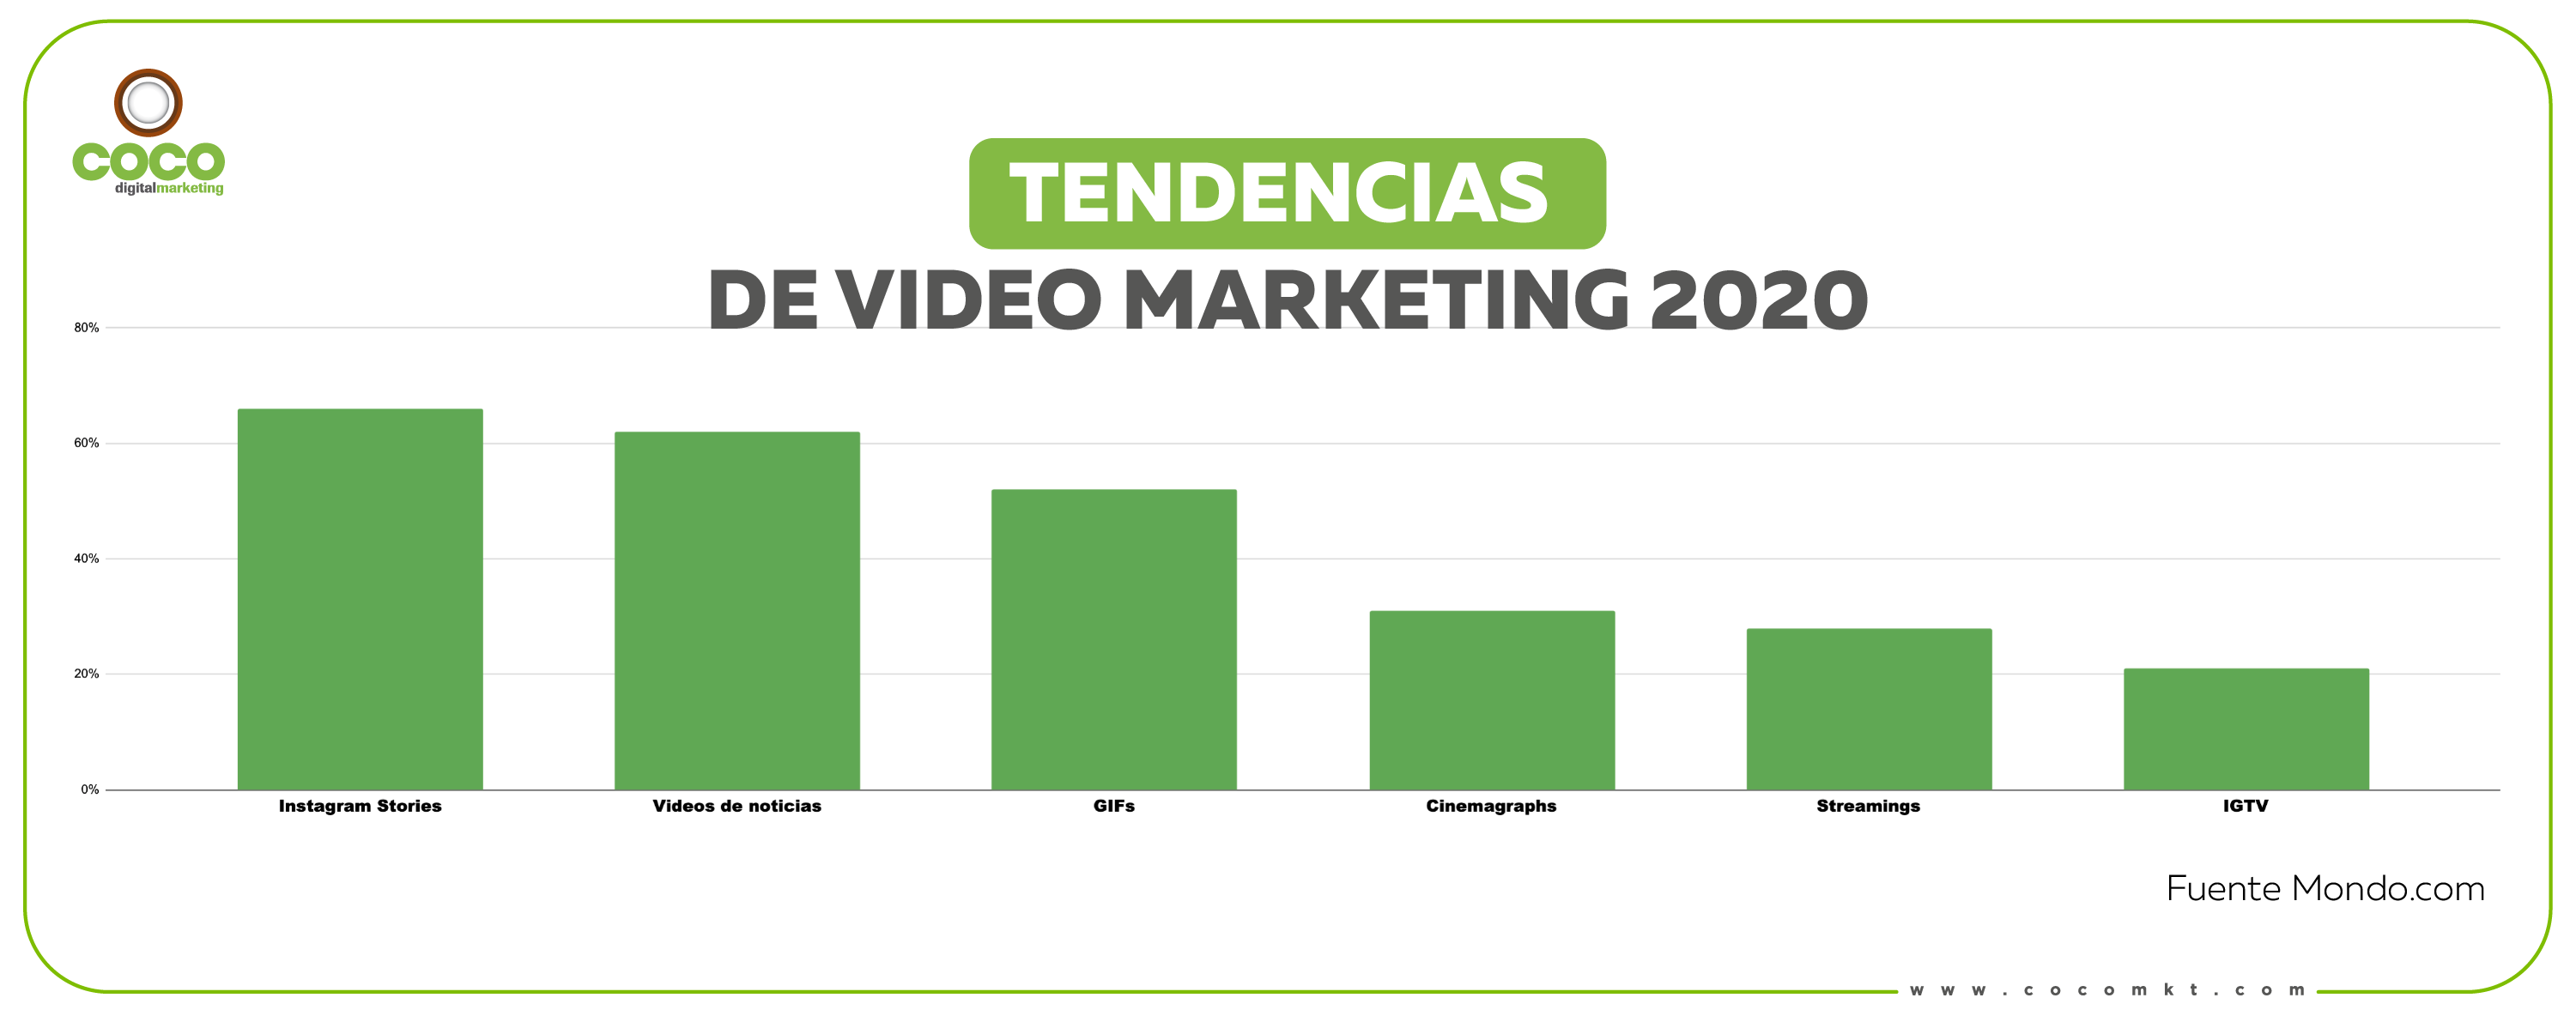 Tendencias de Video Marketing 2020